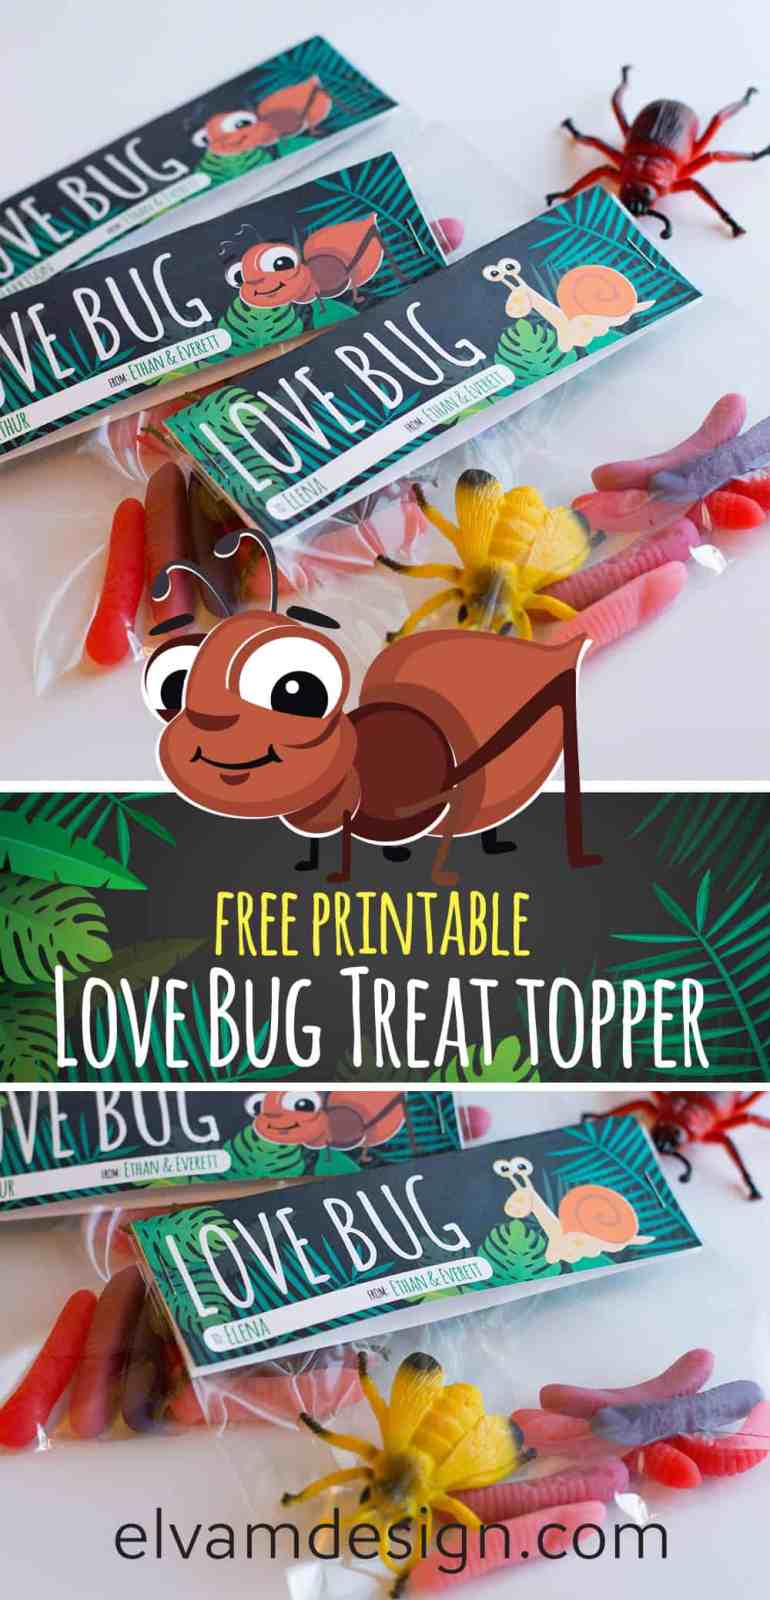 Download this free Love Bug Valentines Treat Topper at elvamdesign.com